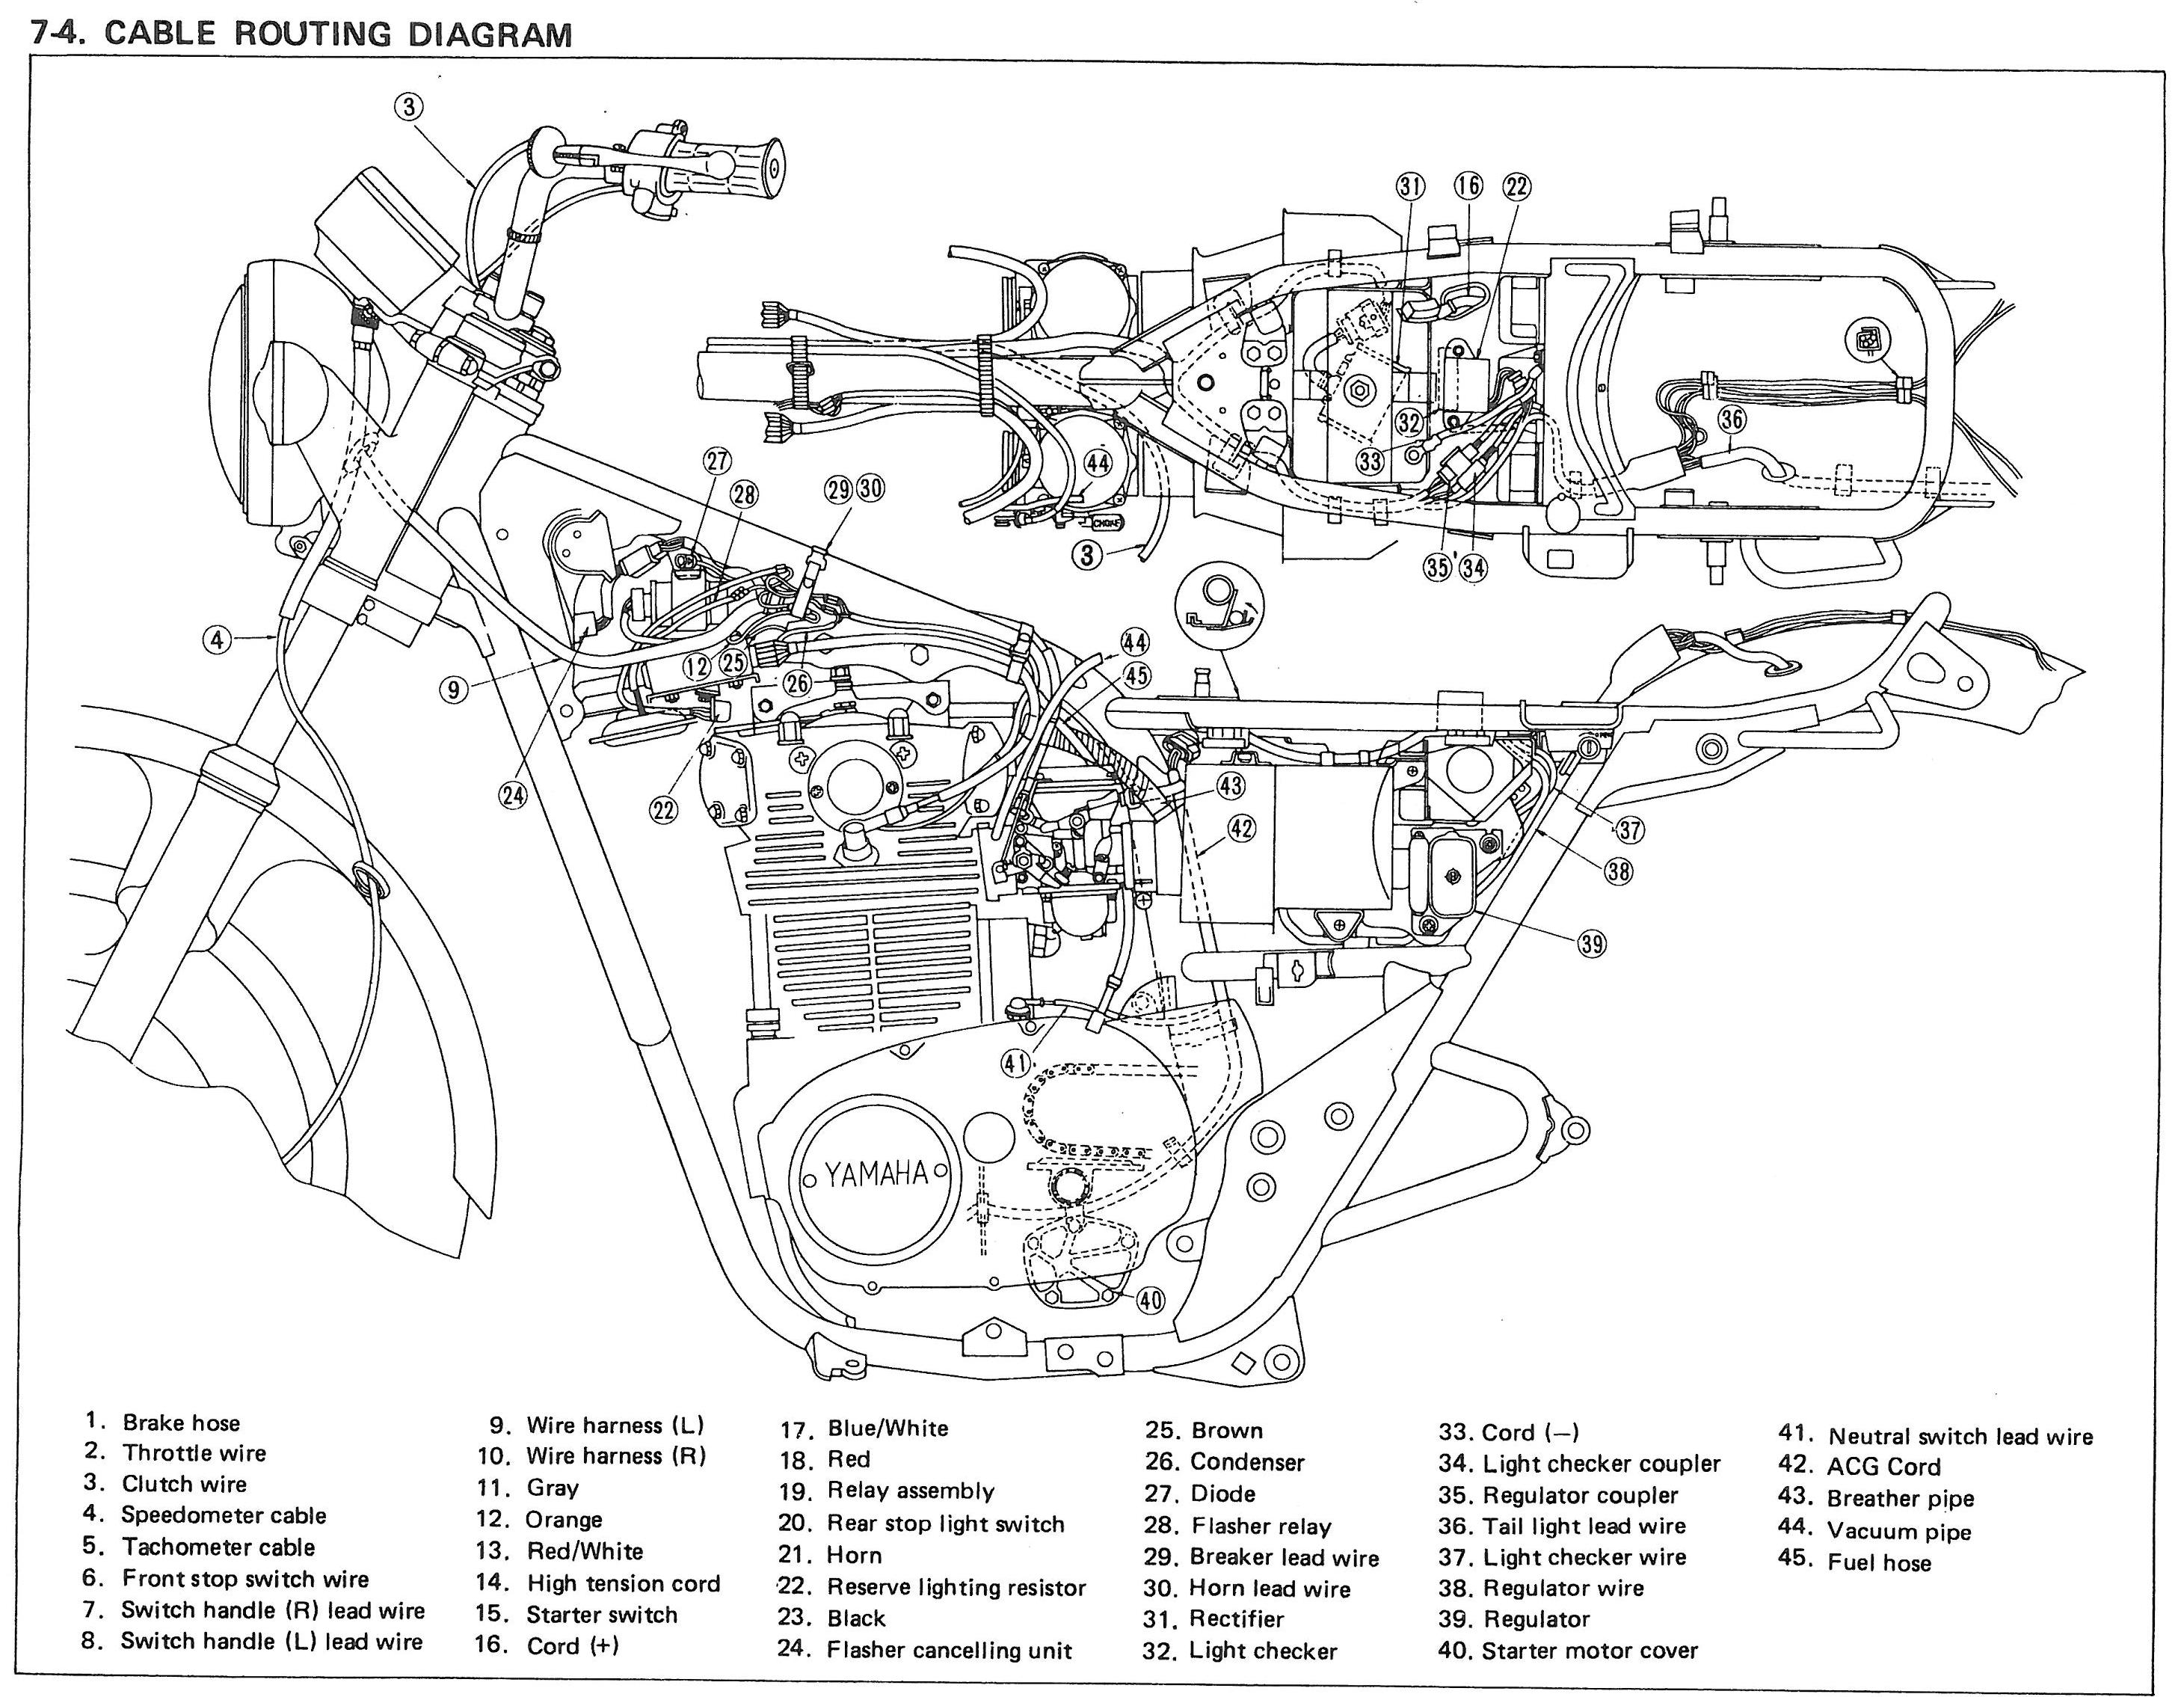 1978 Yamaha Xs650 Wiring Diagram on